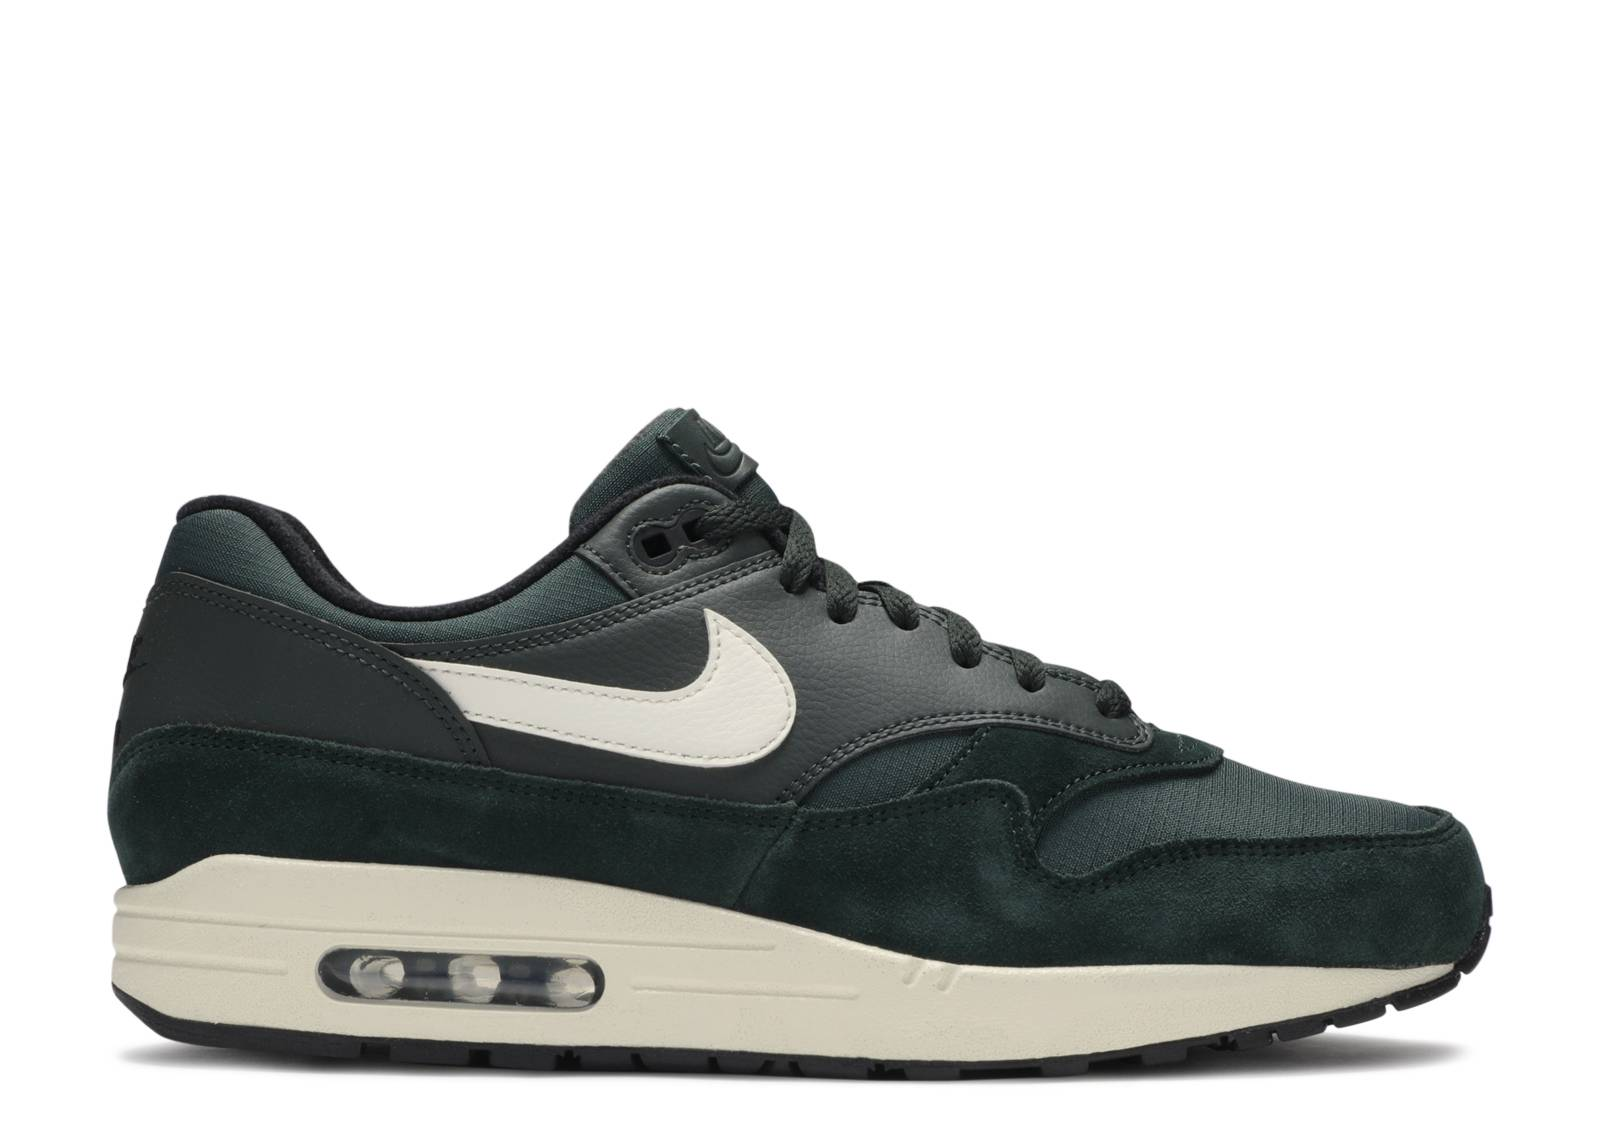 Air Max 1 'Outdoor Green'